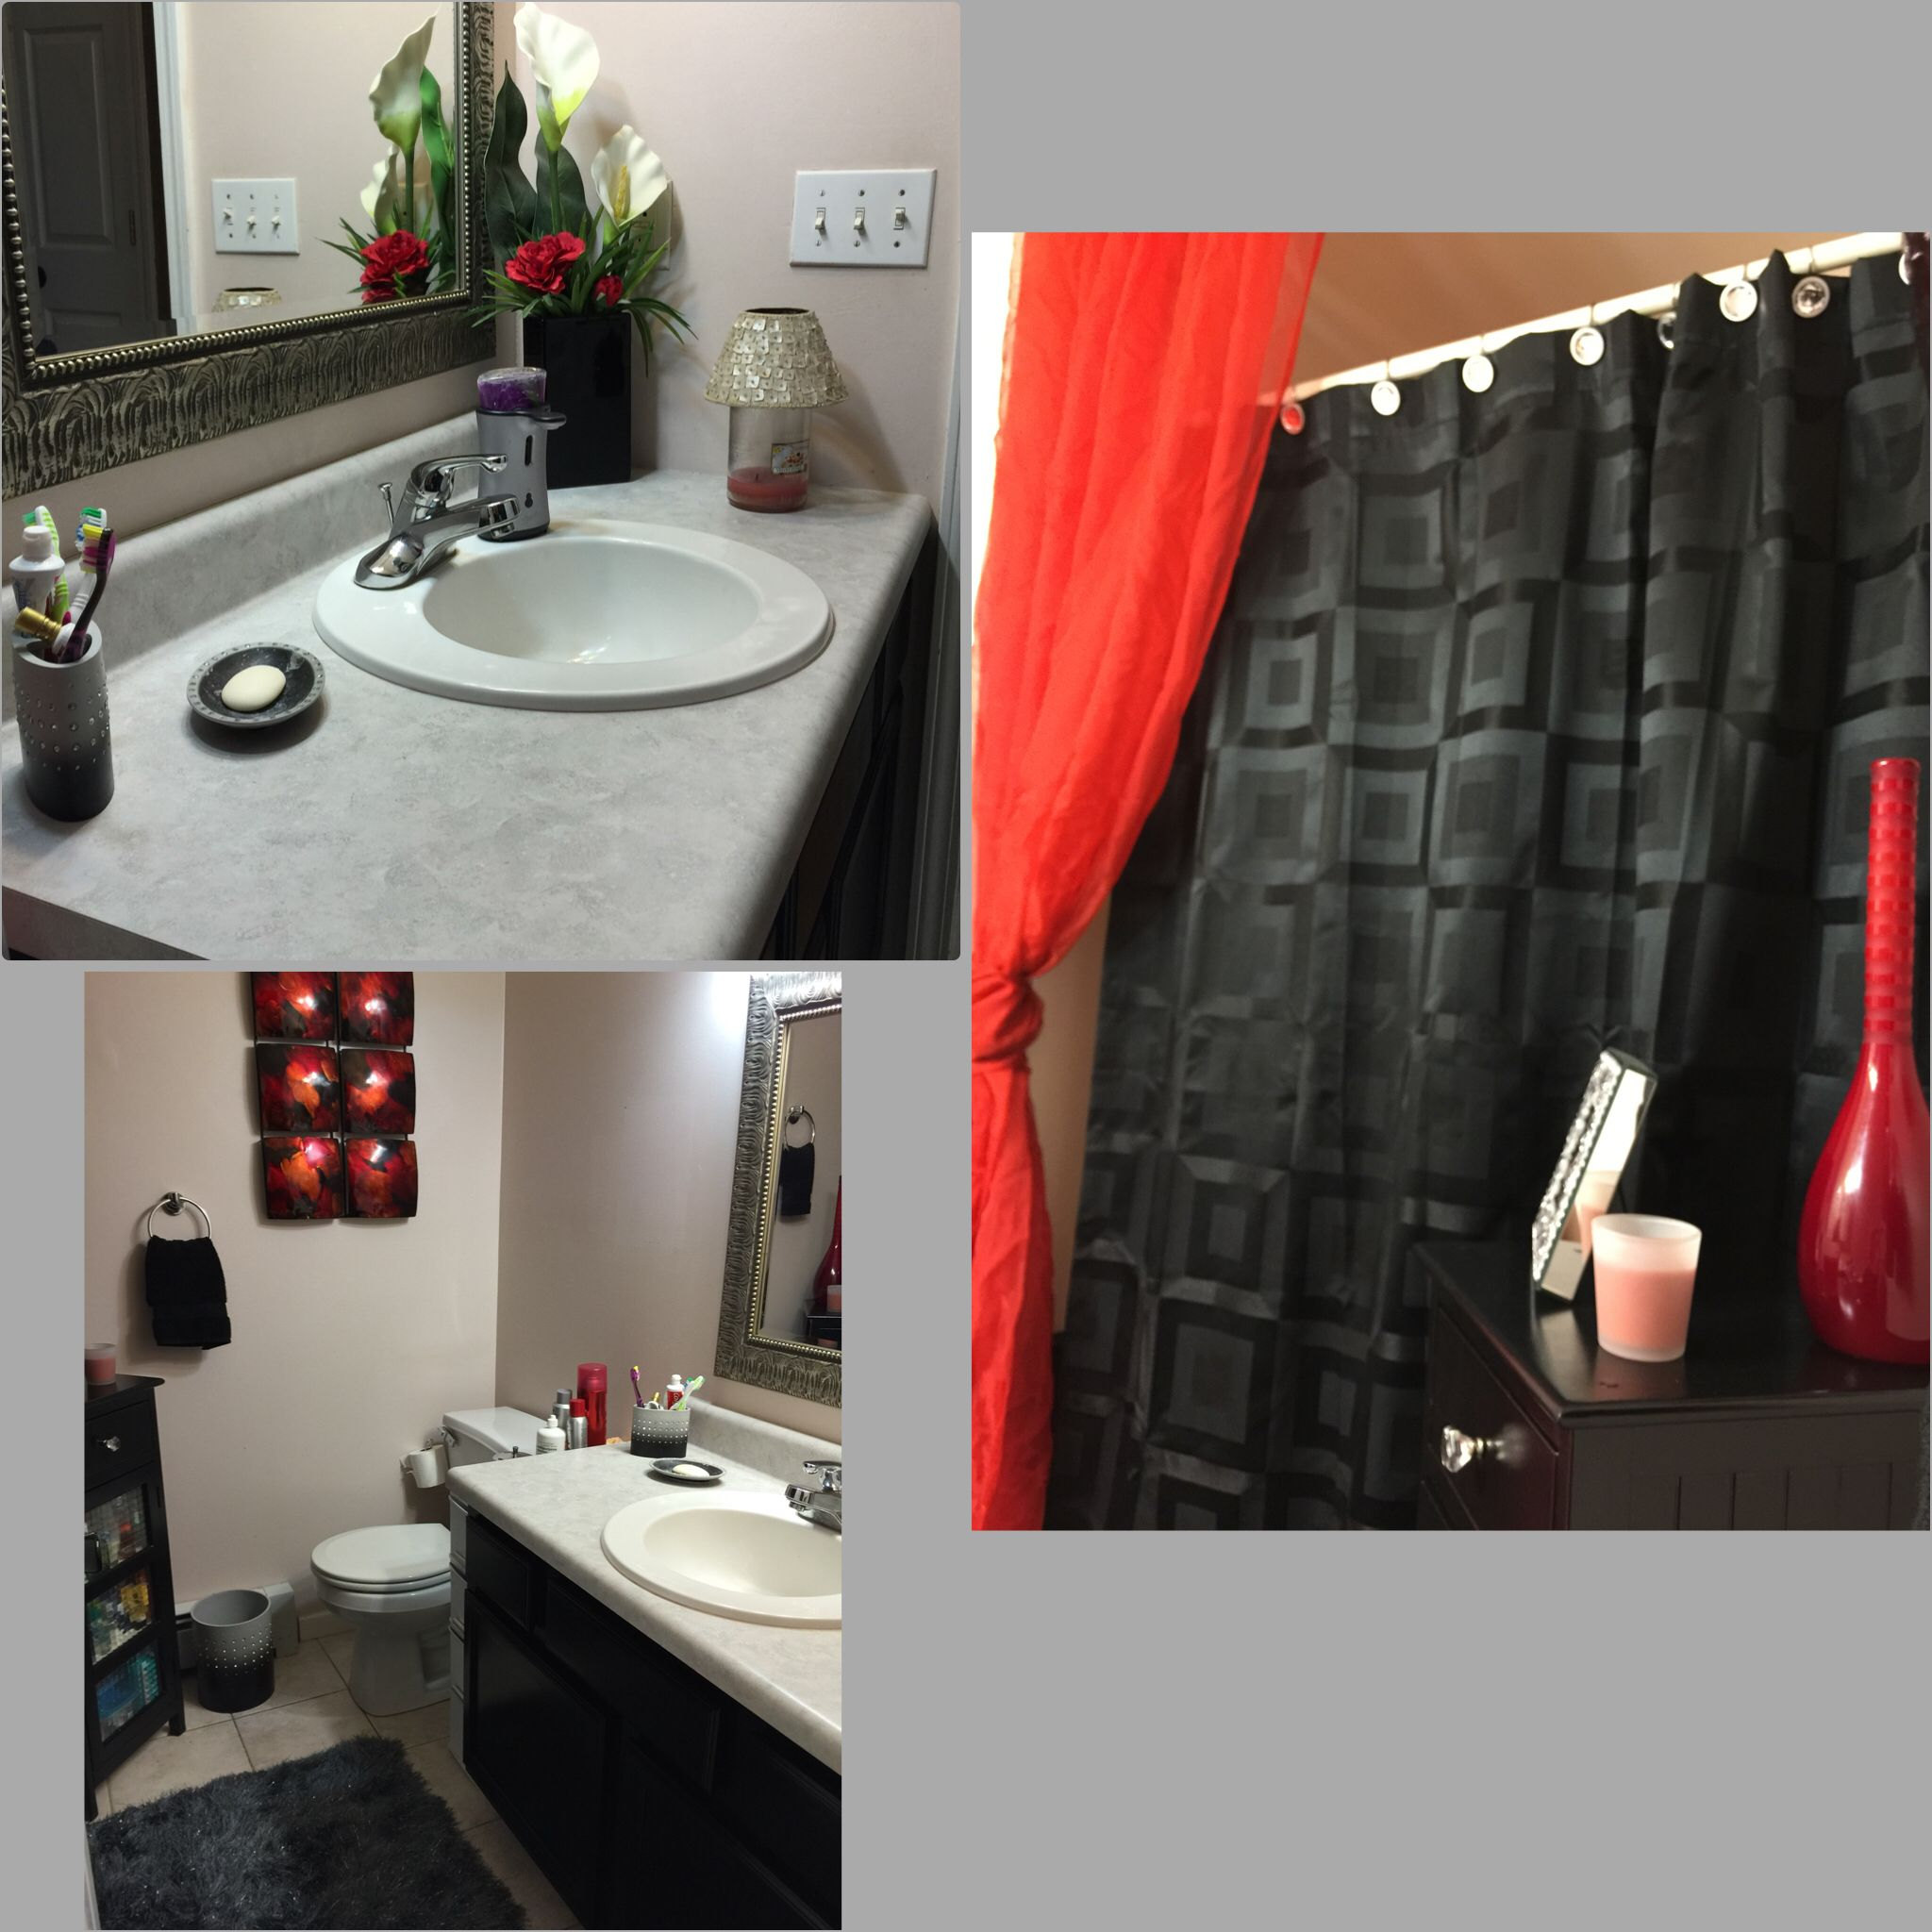 Updated the bathroom by painting the cabinets black and a pop of red